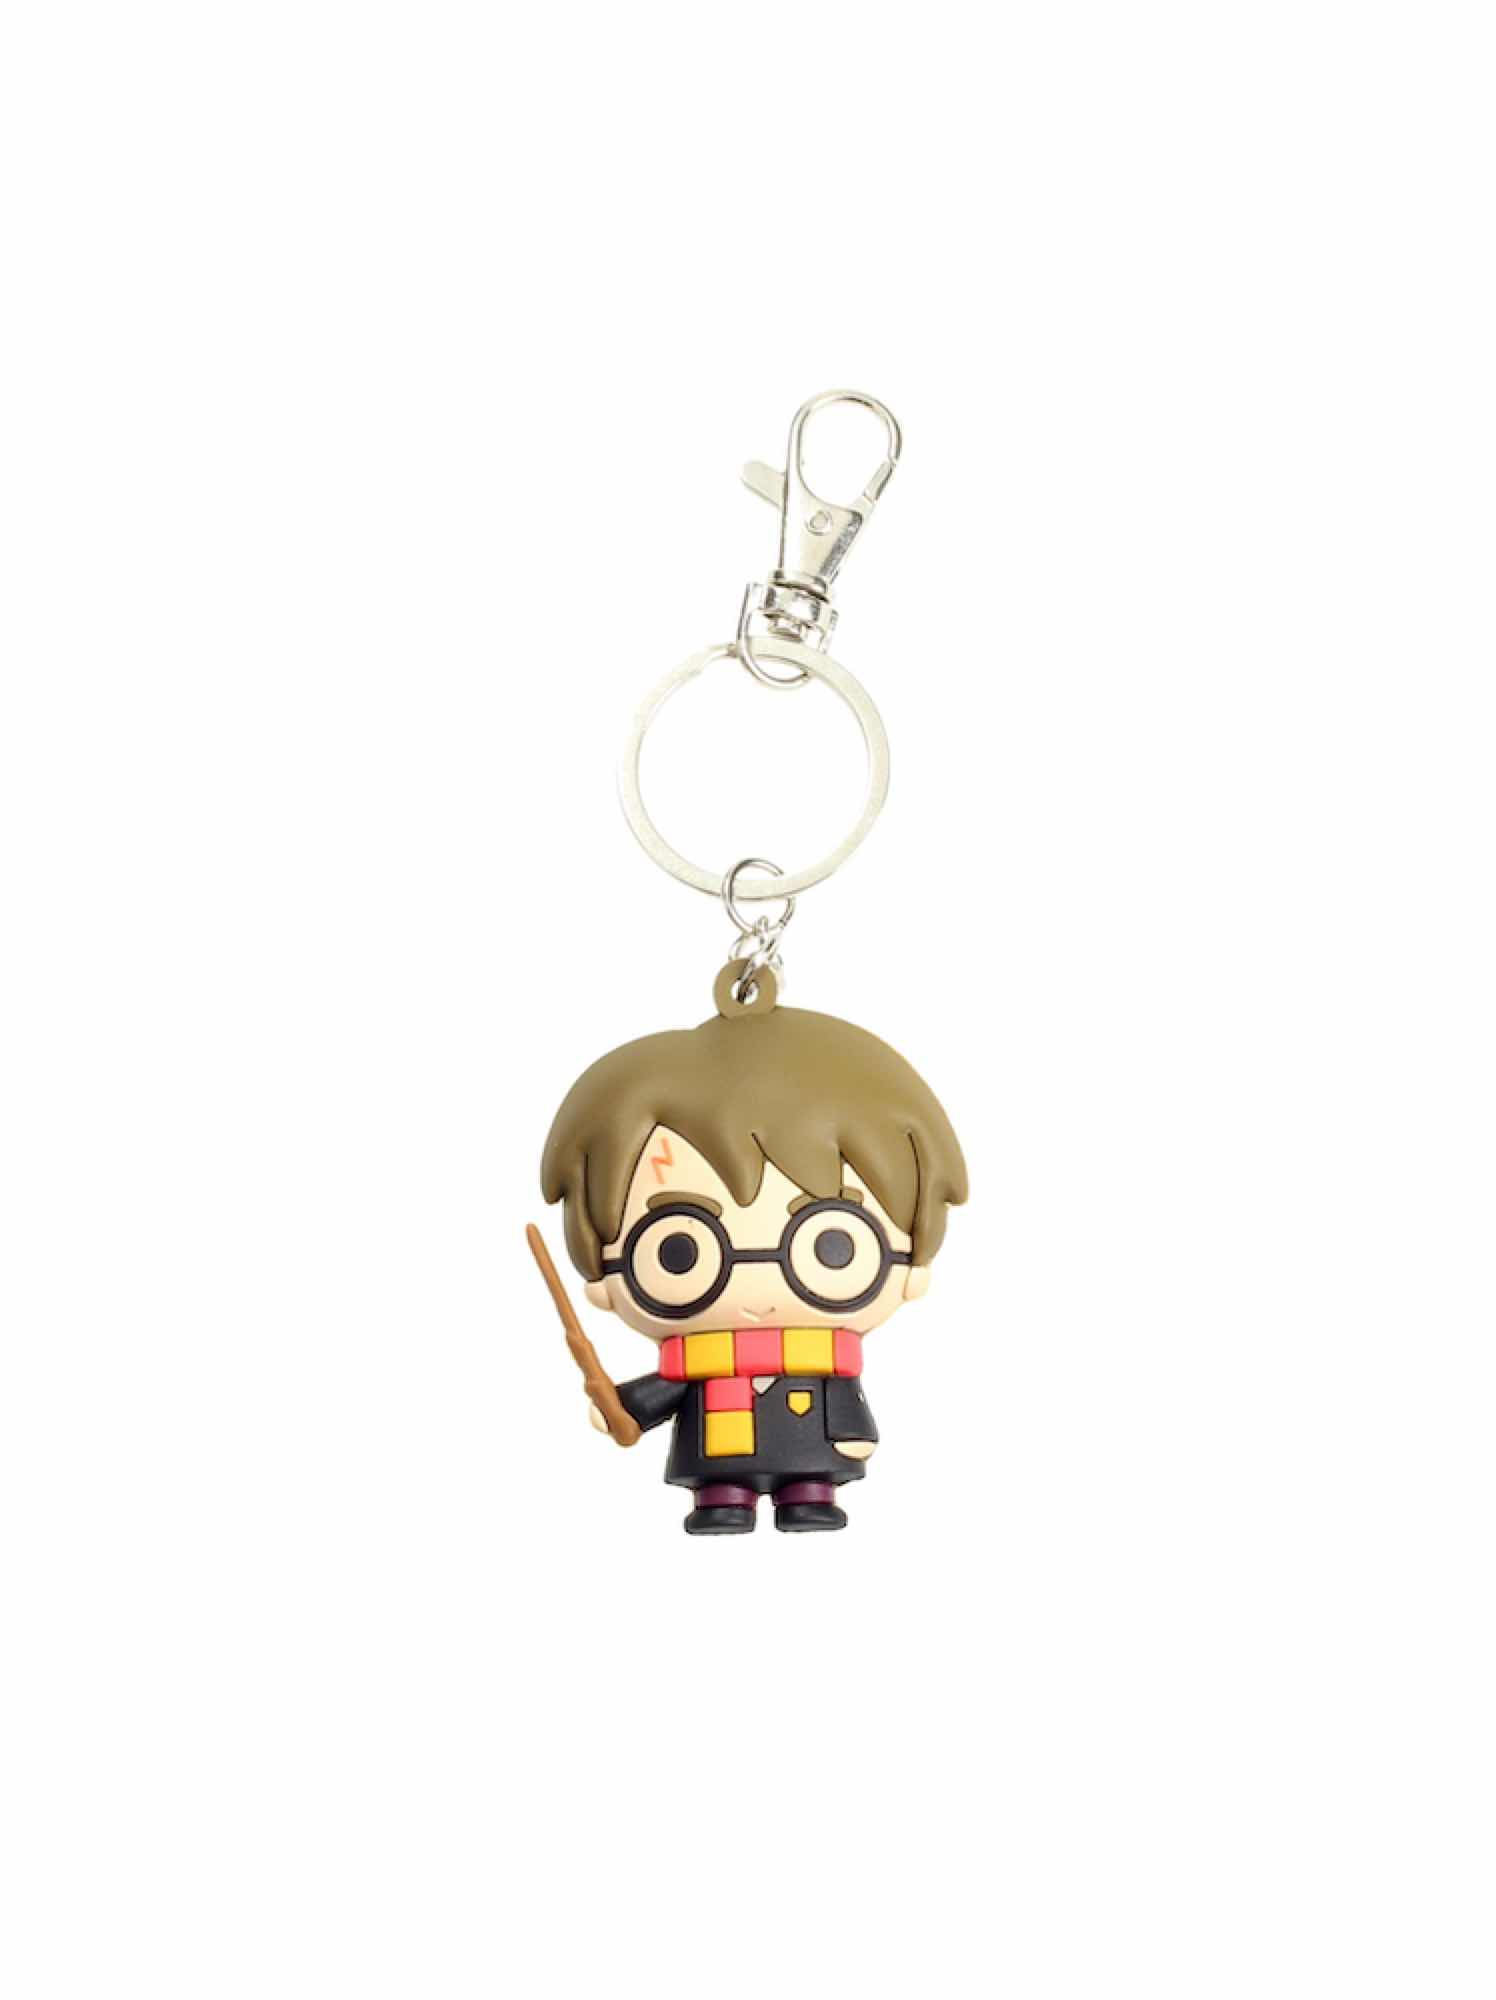 HARRY POTTER LLAVERO FIGURATIVO GOMA HARRY POTTER BLISTER